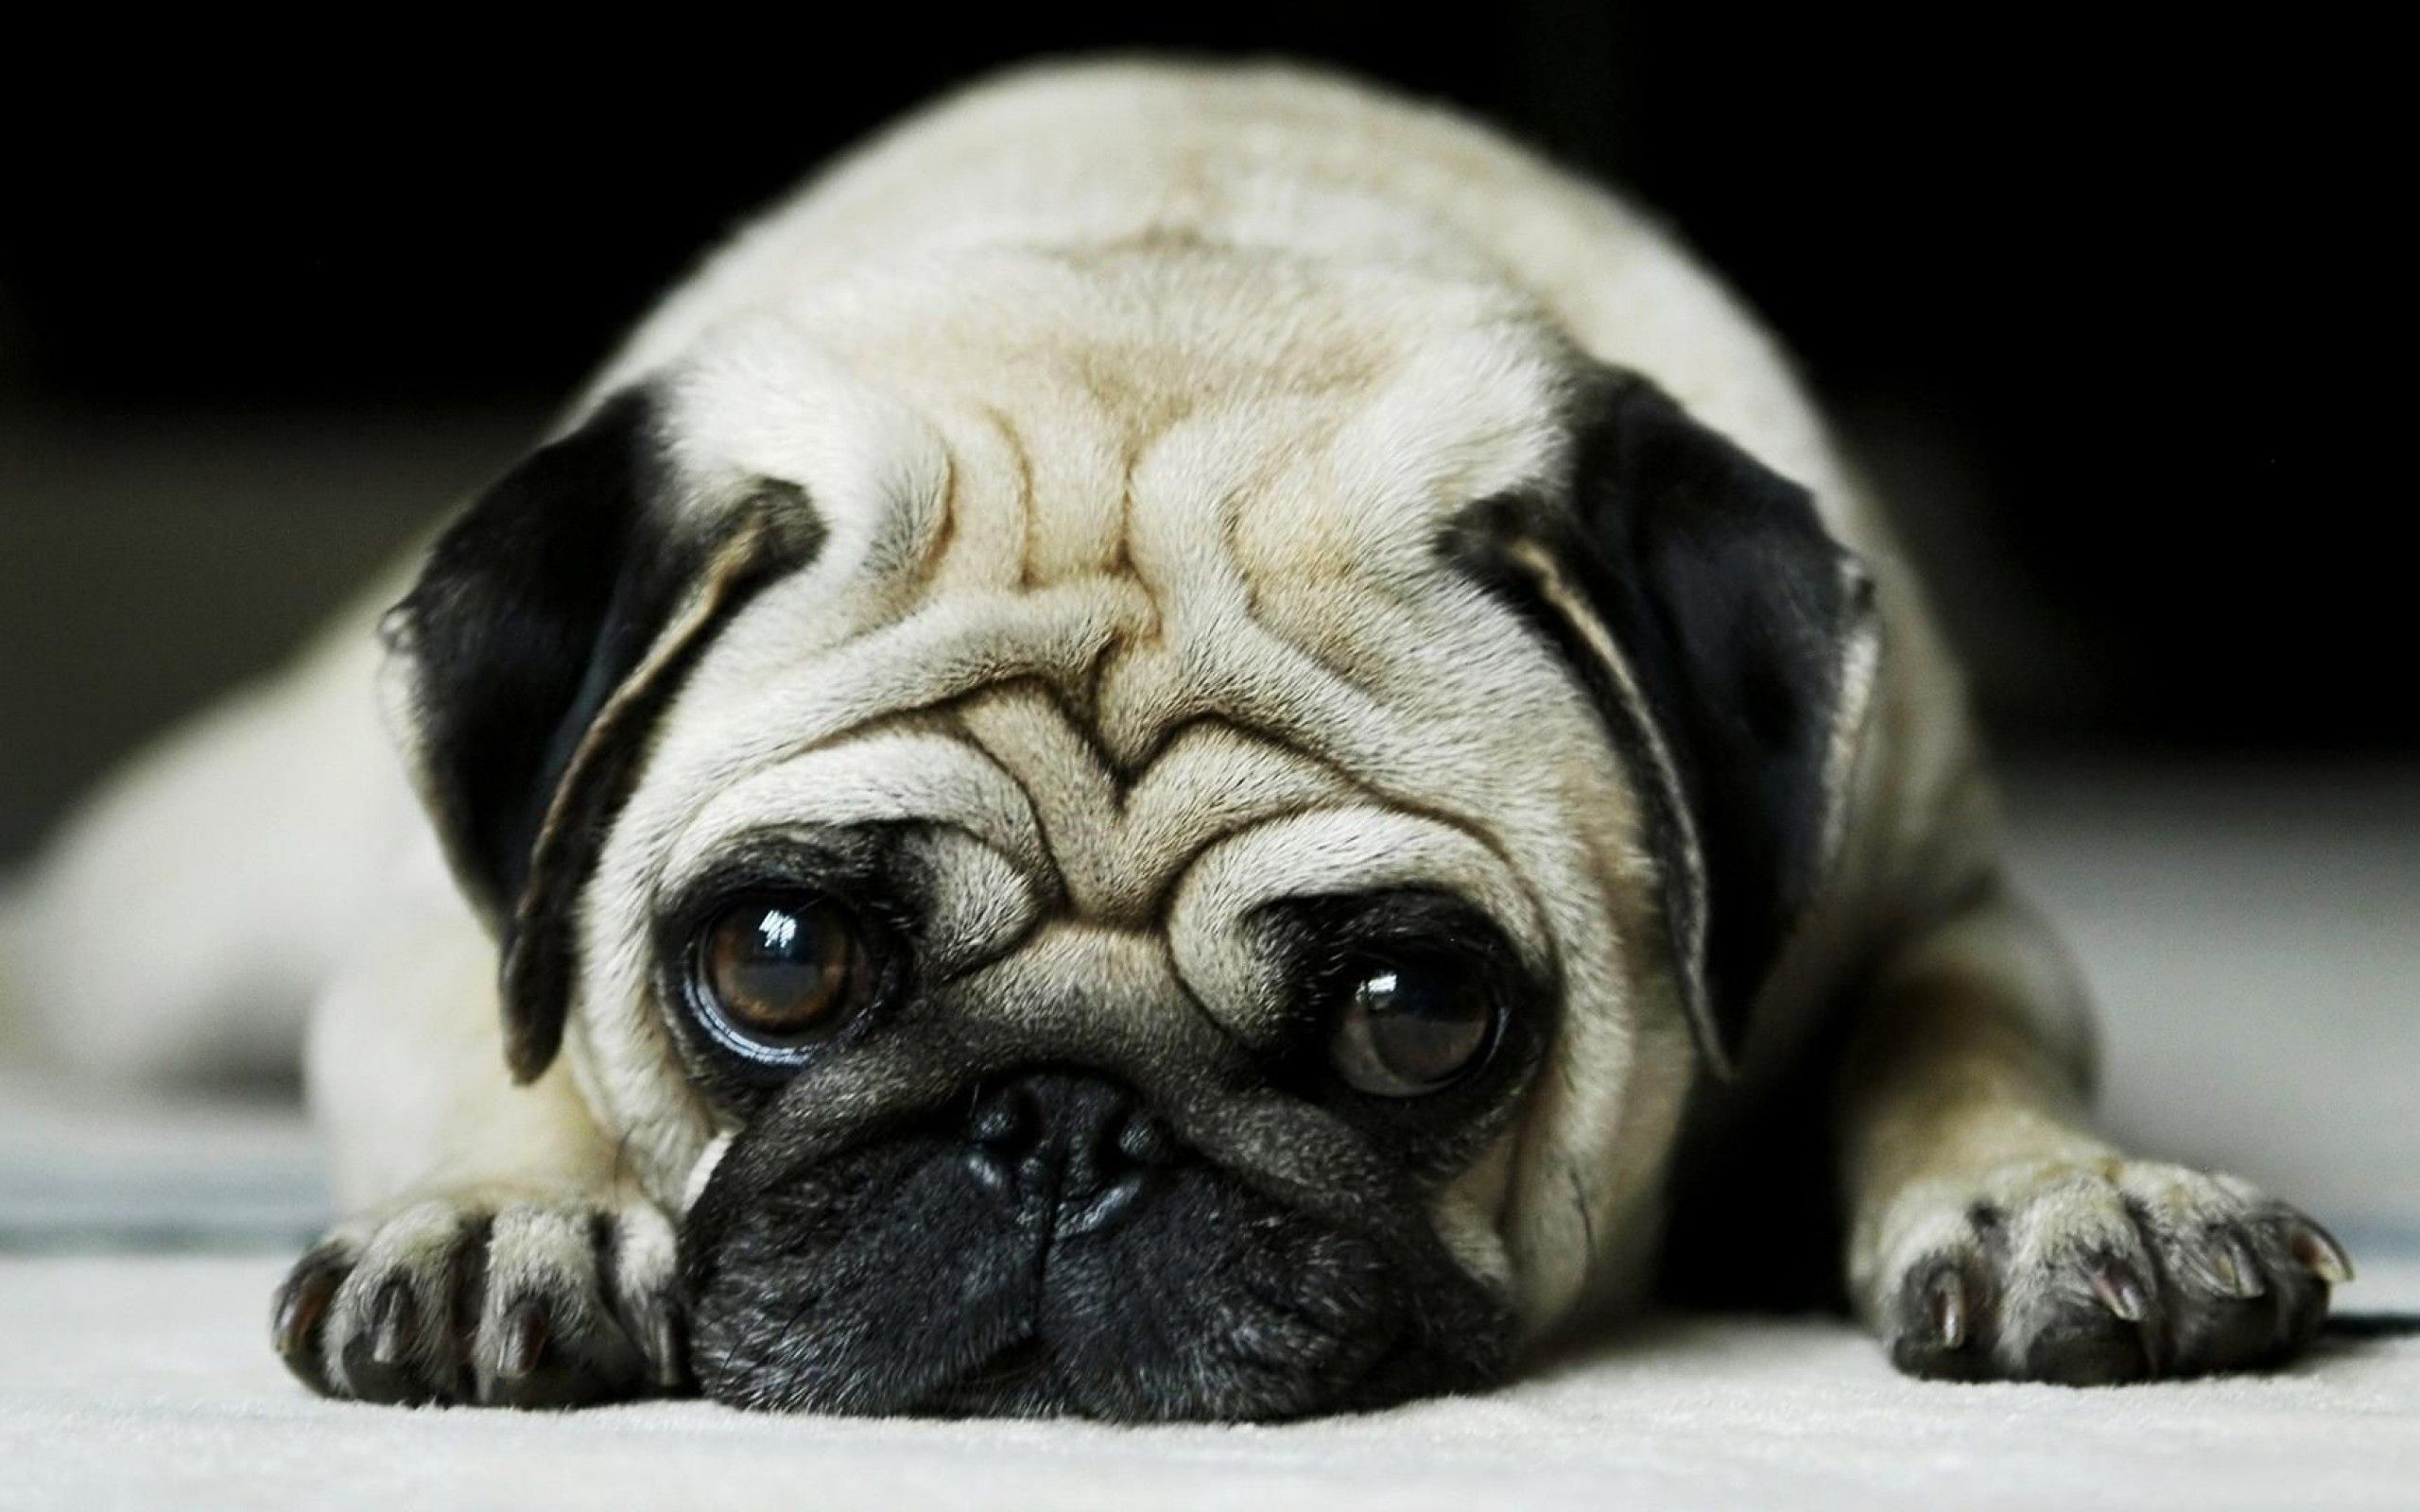 Pug Dog Wallpaper HD